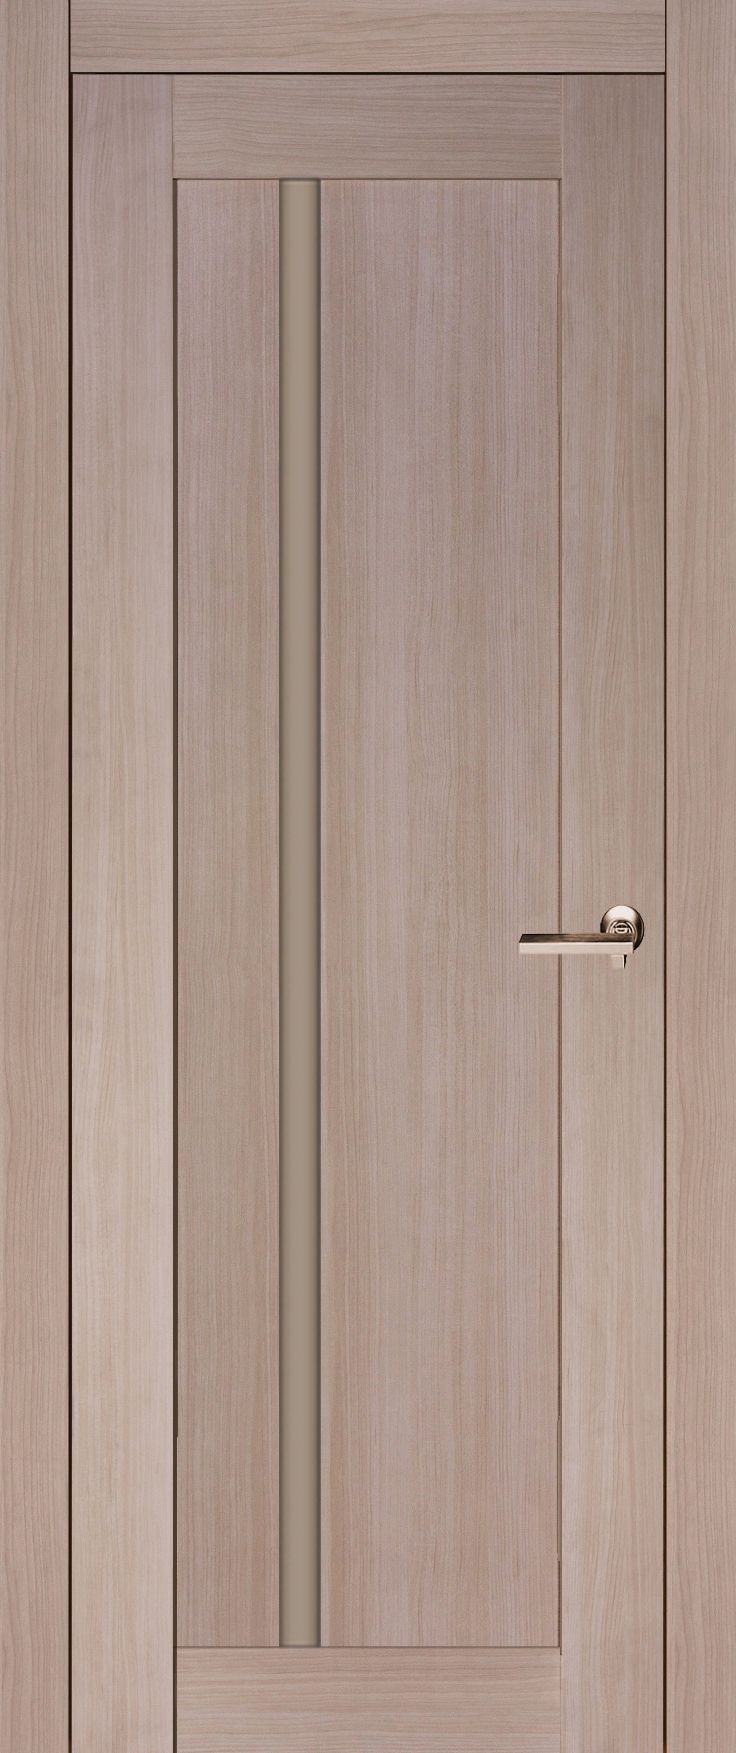 Techno wood door